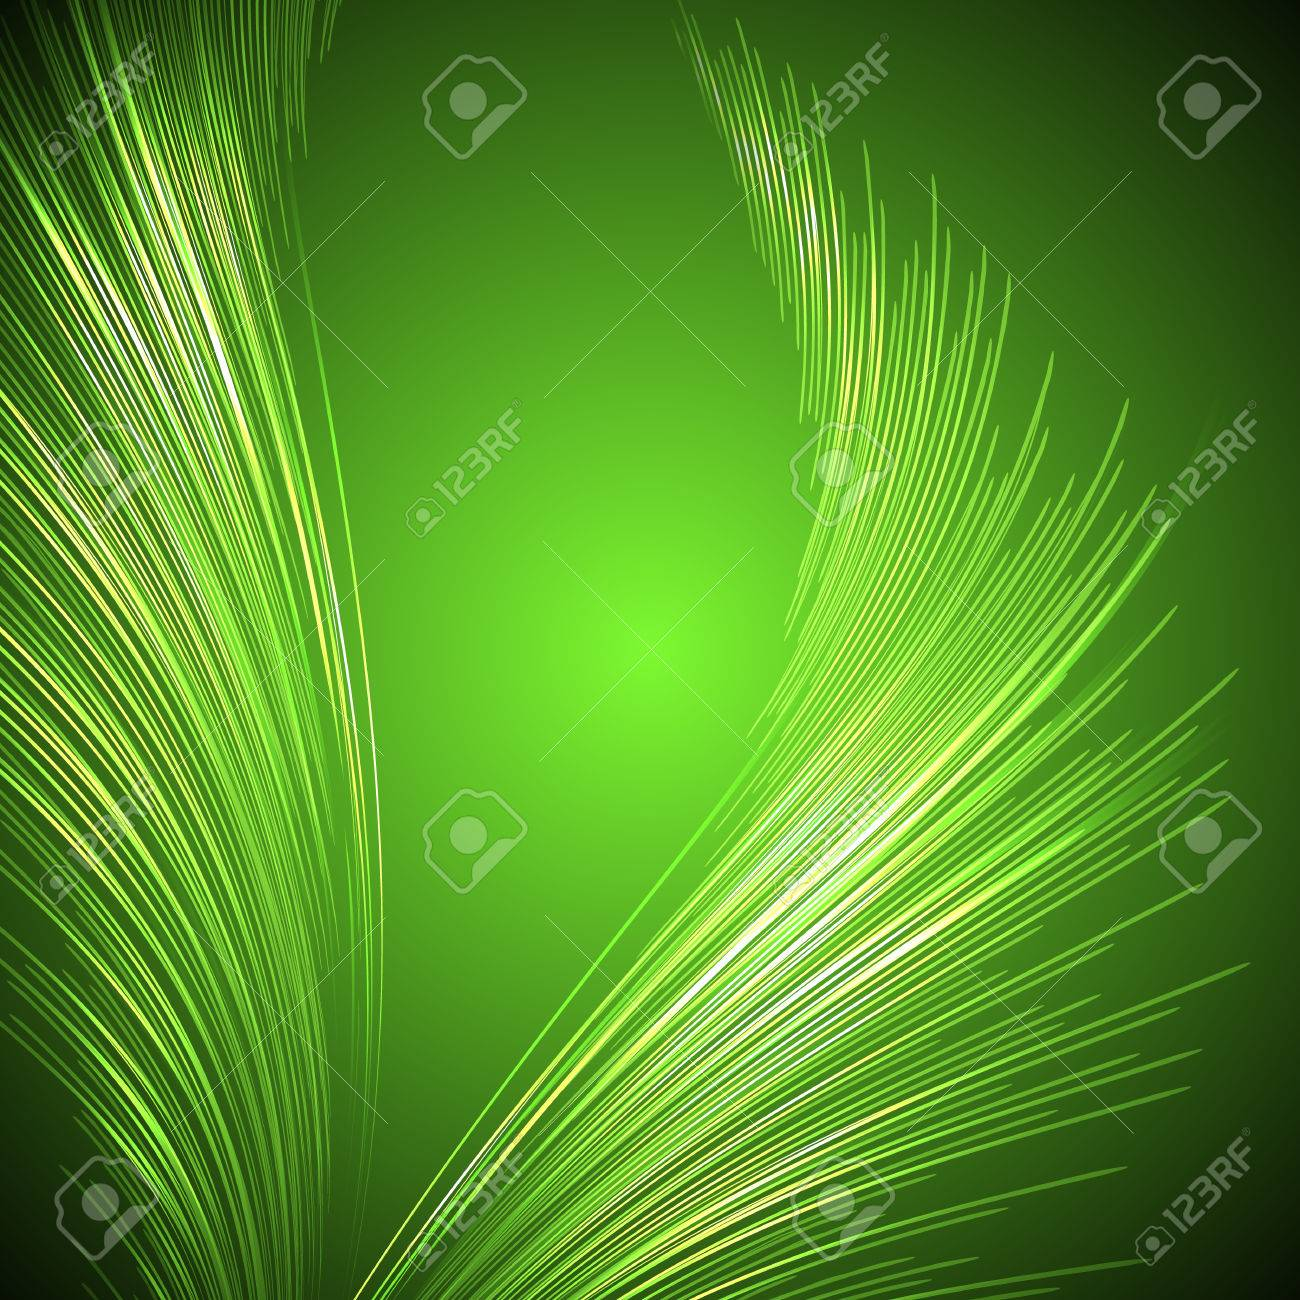 Palm leaves and vector illustration - 51859143